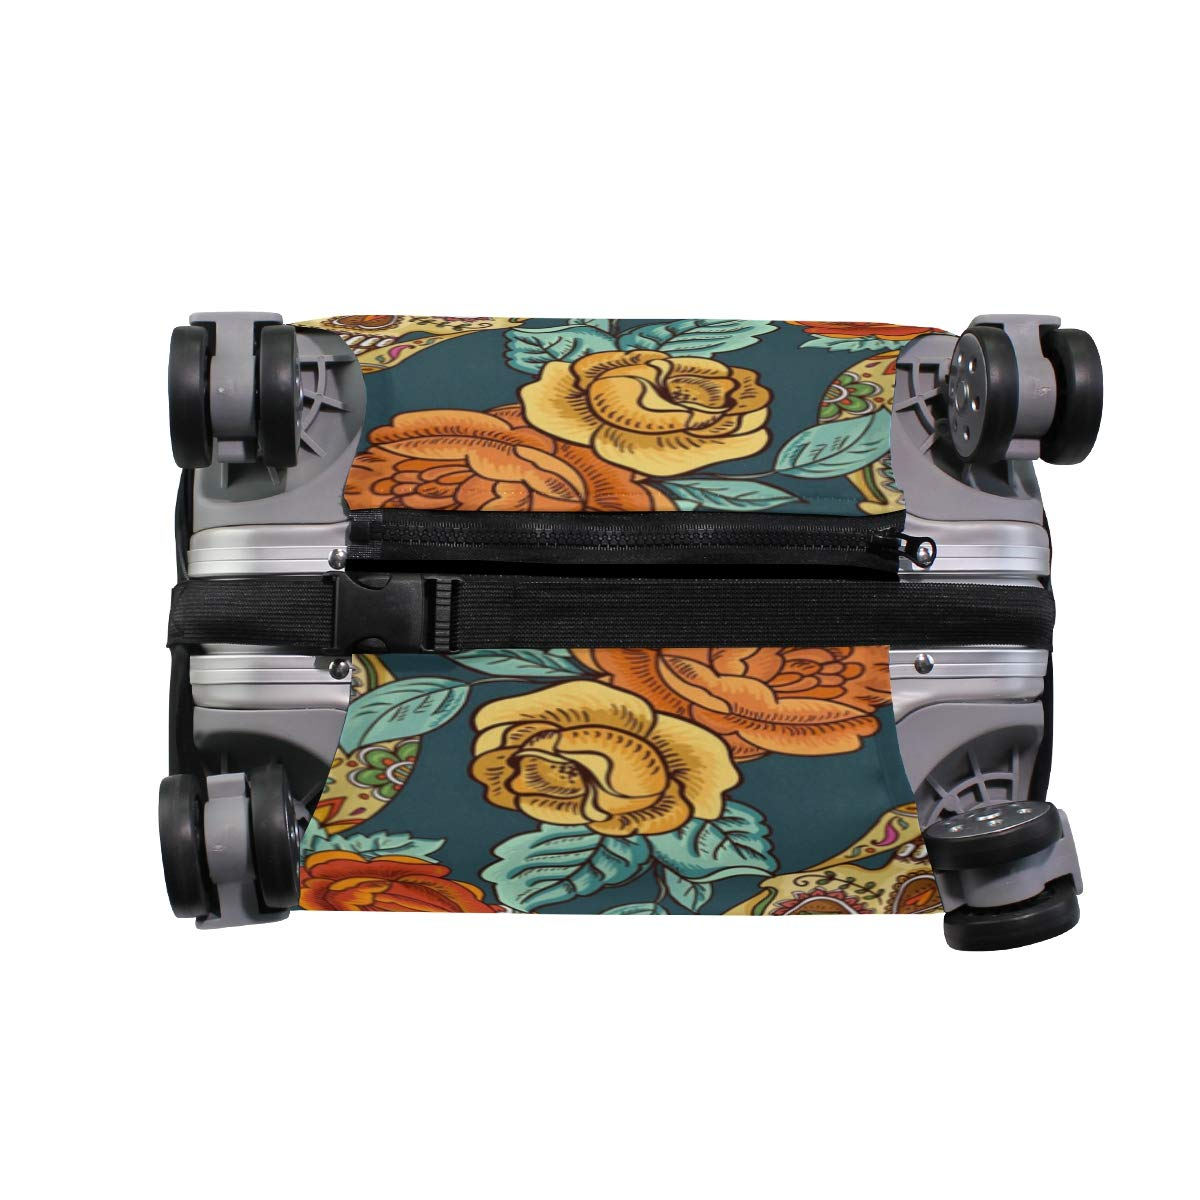 Color Fashion Rose Skull Traveler Lightweight Rotating Luggage Protector Case Can Carry With You Can Expand Travel Bag Trolley Rolling Luggage Protector Case